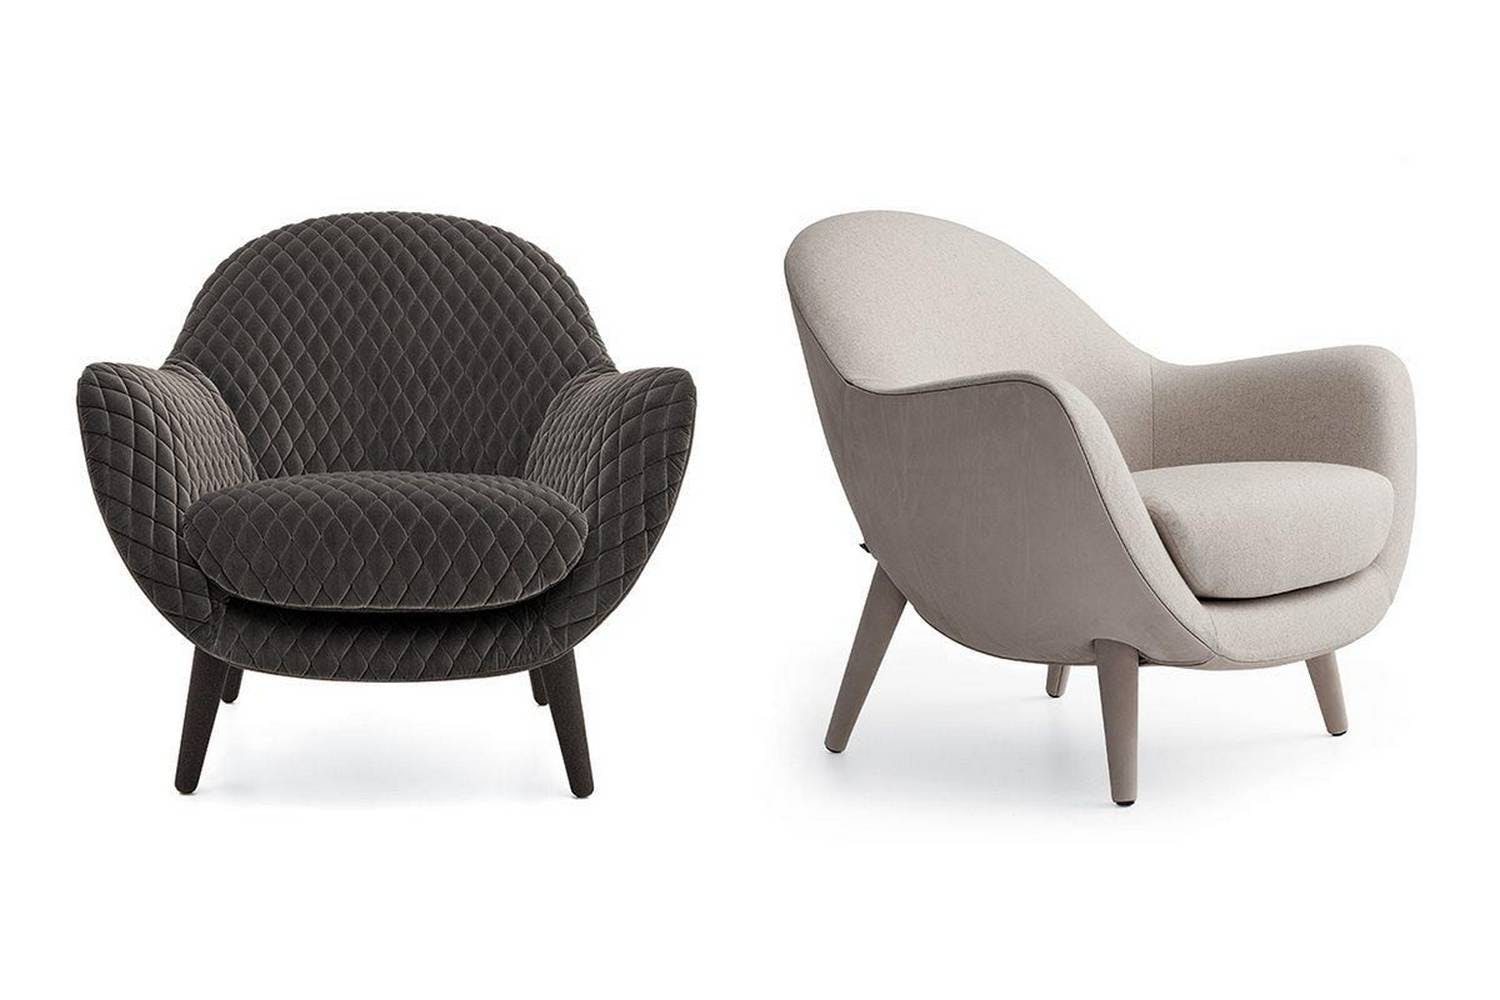 Mad Queen Armchair by Marcel Wanders for Poliform ...